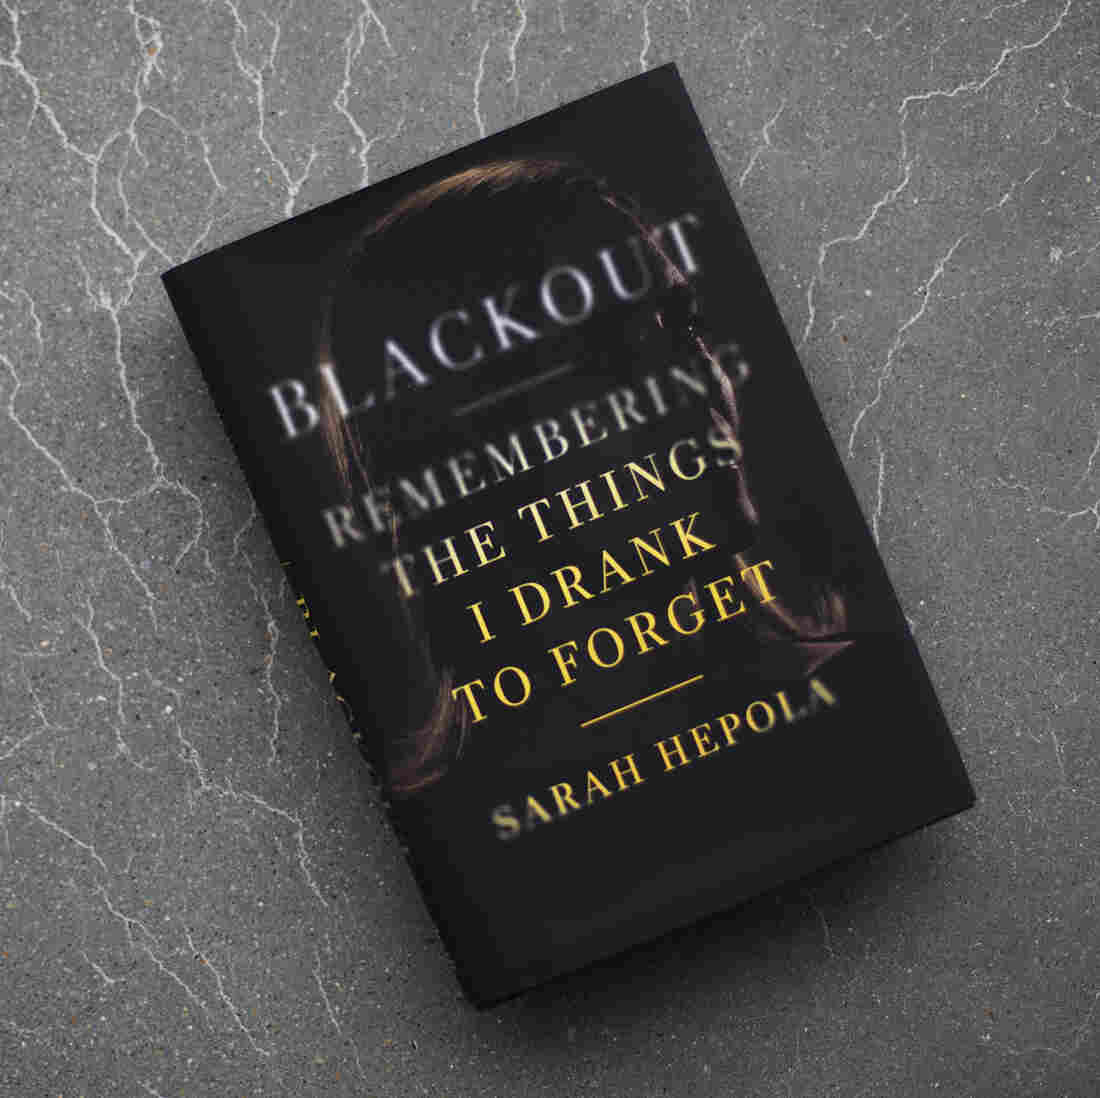 After Years Of Blackouts, A Writer Remembers What She 'Drank To Forget'